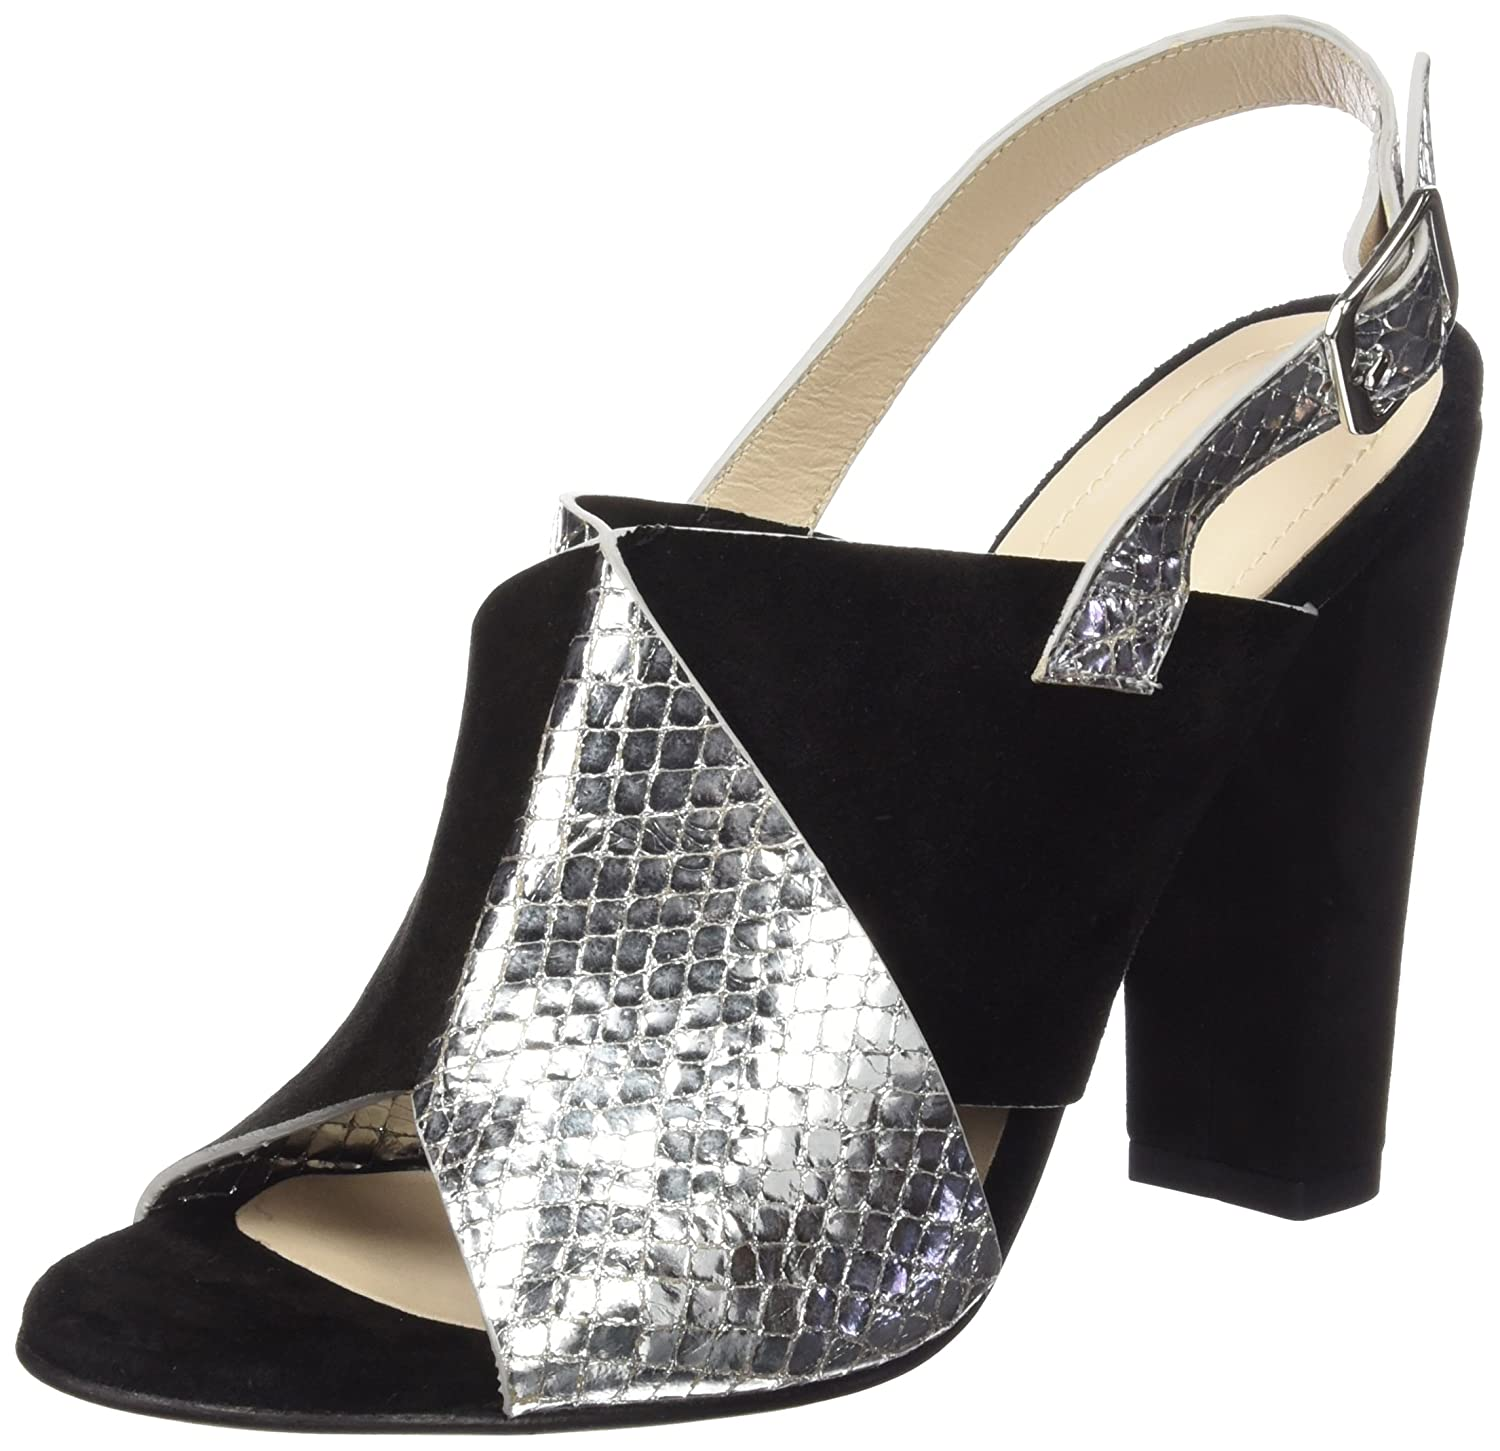 Paco Gil P3045, Sandales Bout Ouvert Femme - Argent - Silber (Silver/Black), 38